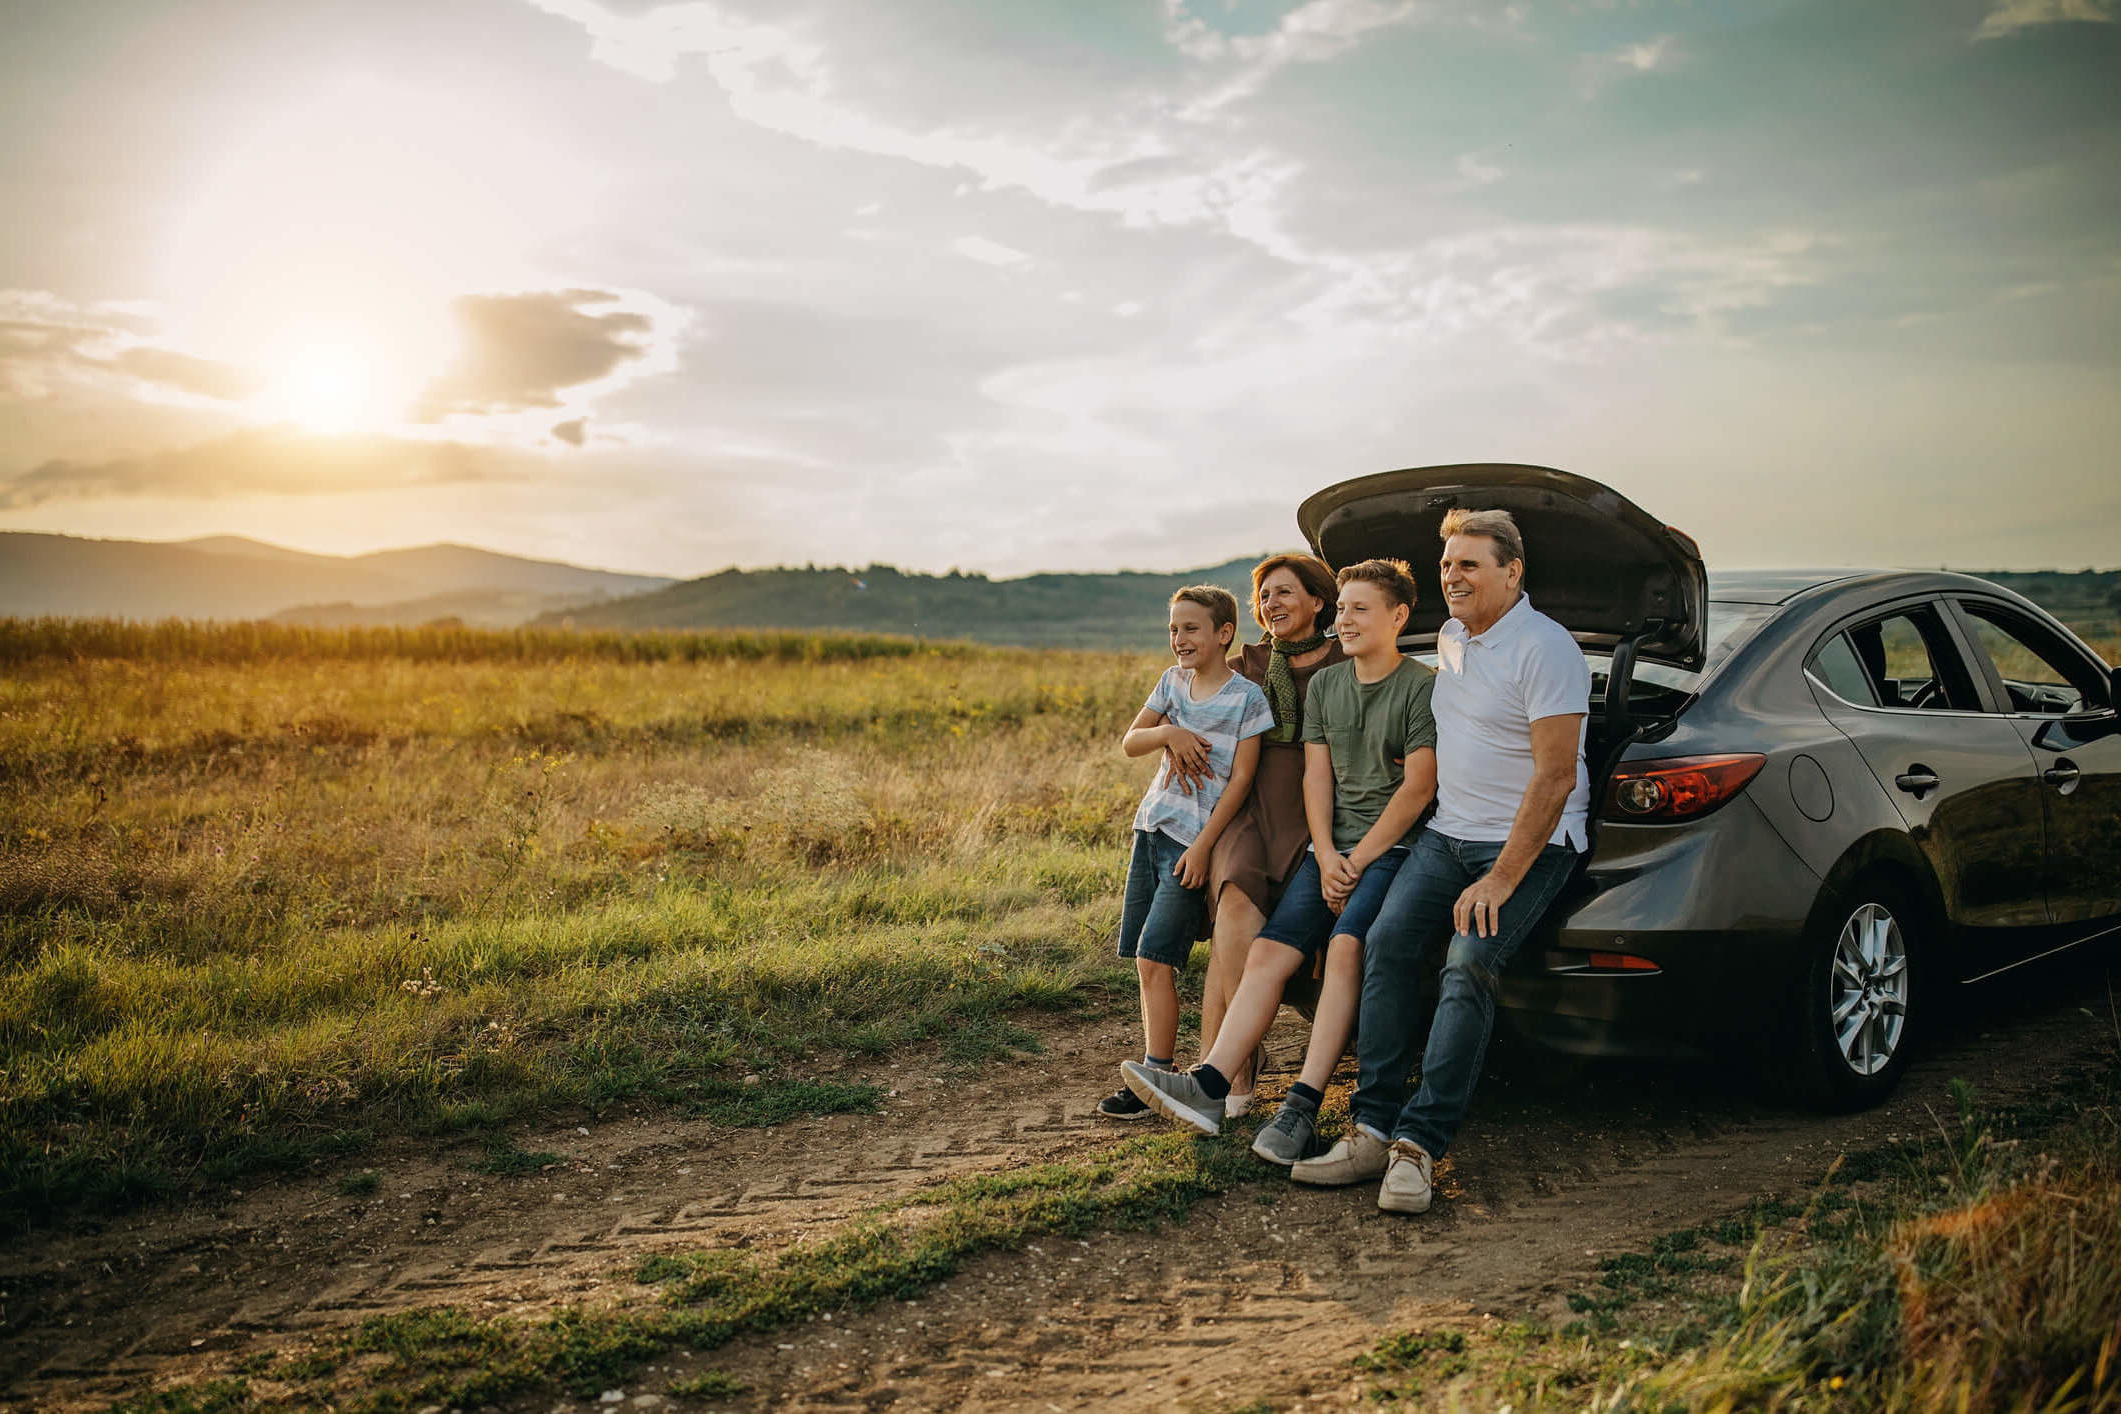 Family of four (a mother, father and two boys) leaning against a car looking over a field